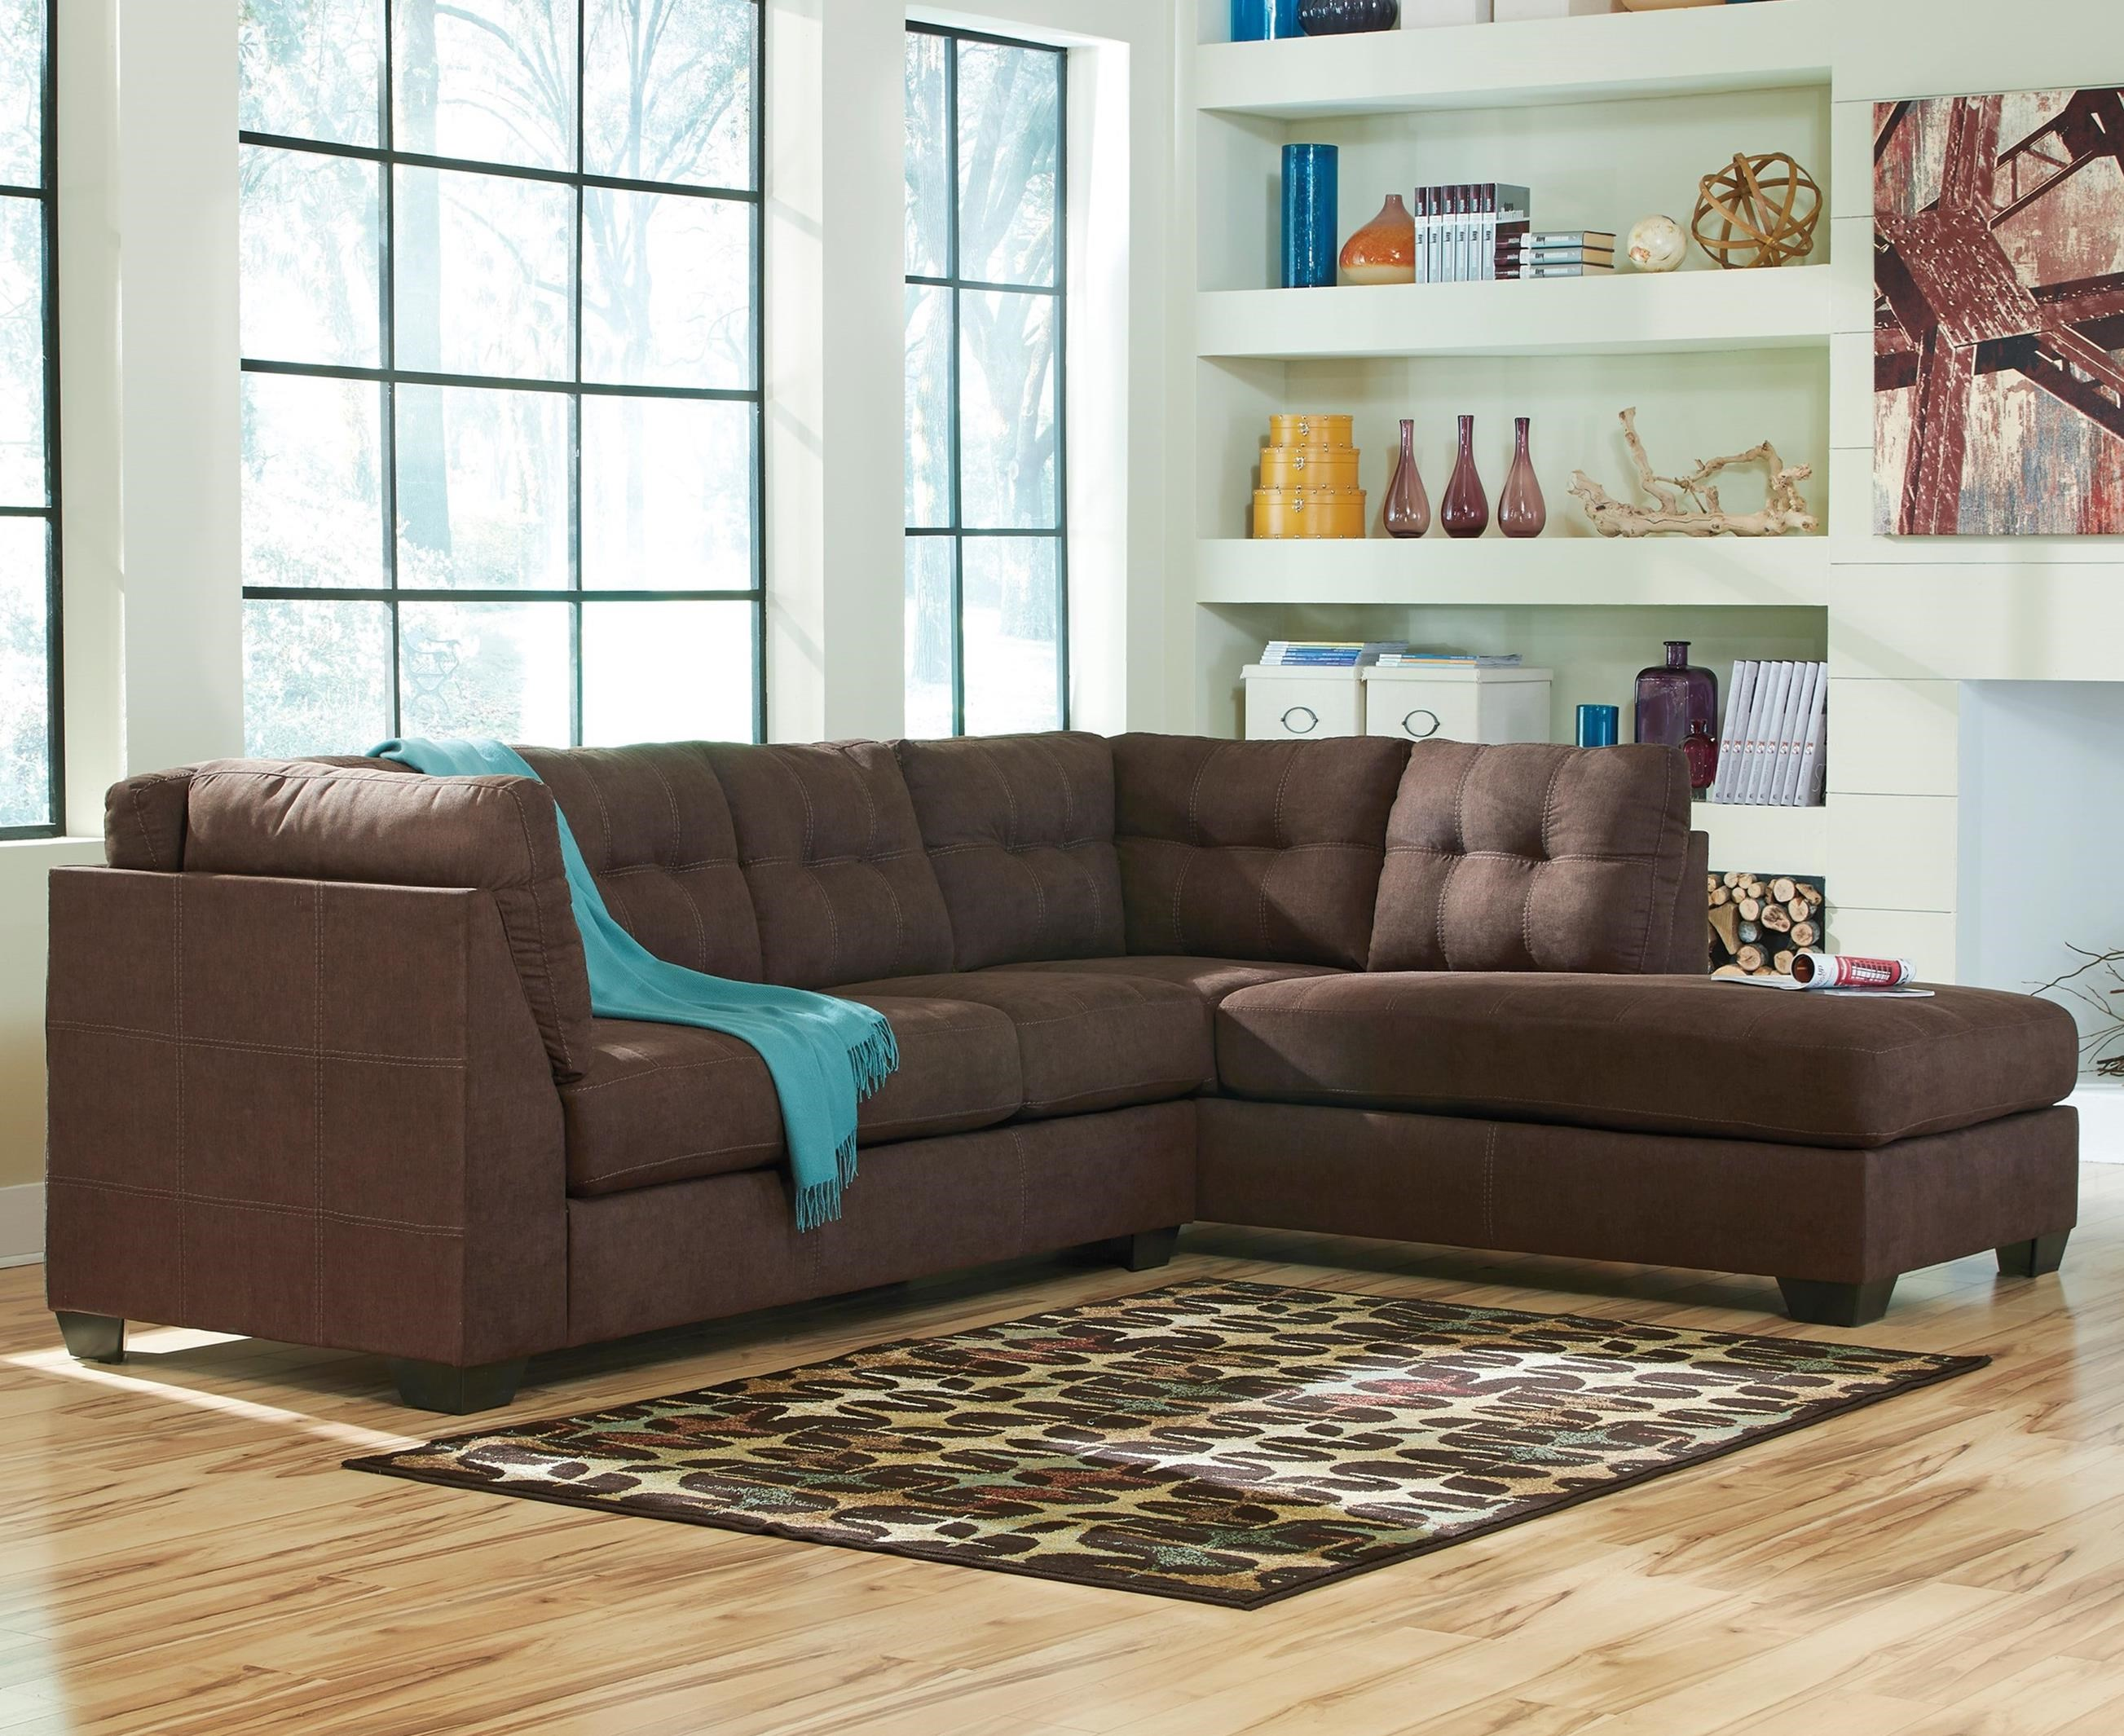 Maier 2-Piece Sectional with Chaise by Benchcraft at Miller Waldrop Furniture and Decor